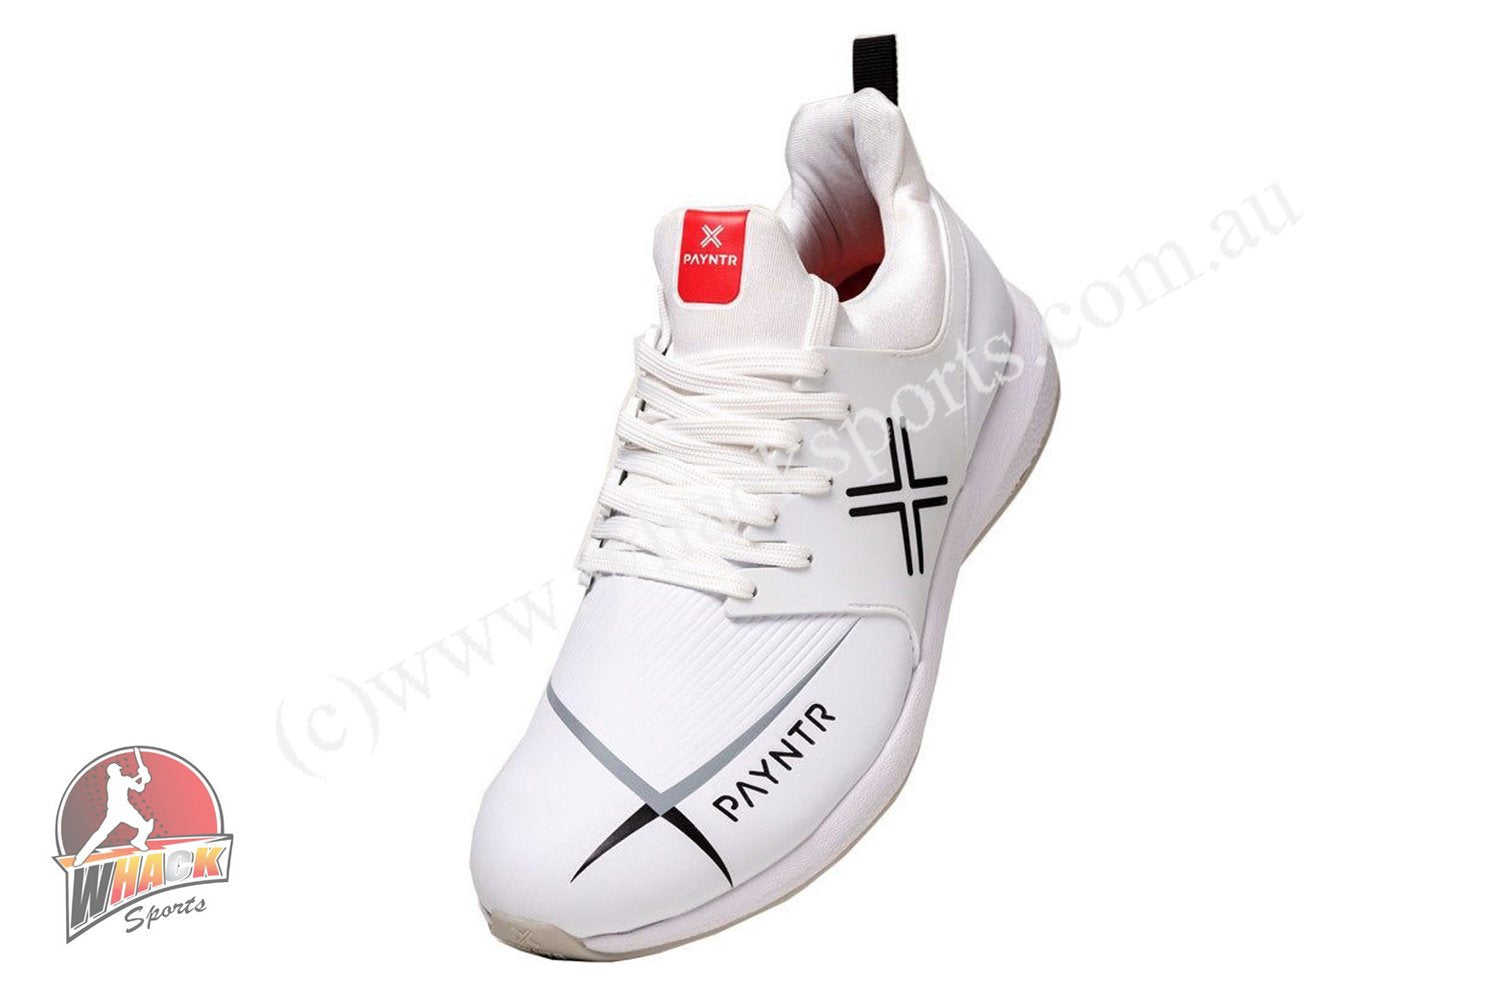 Payntr MK3 Cricket Shoes Steel Spikes